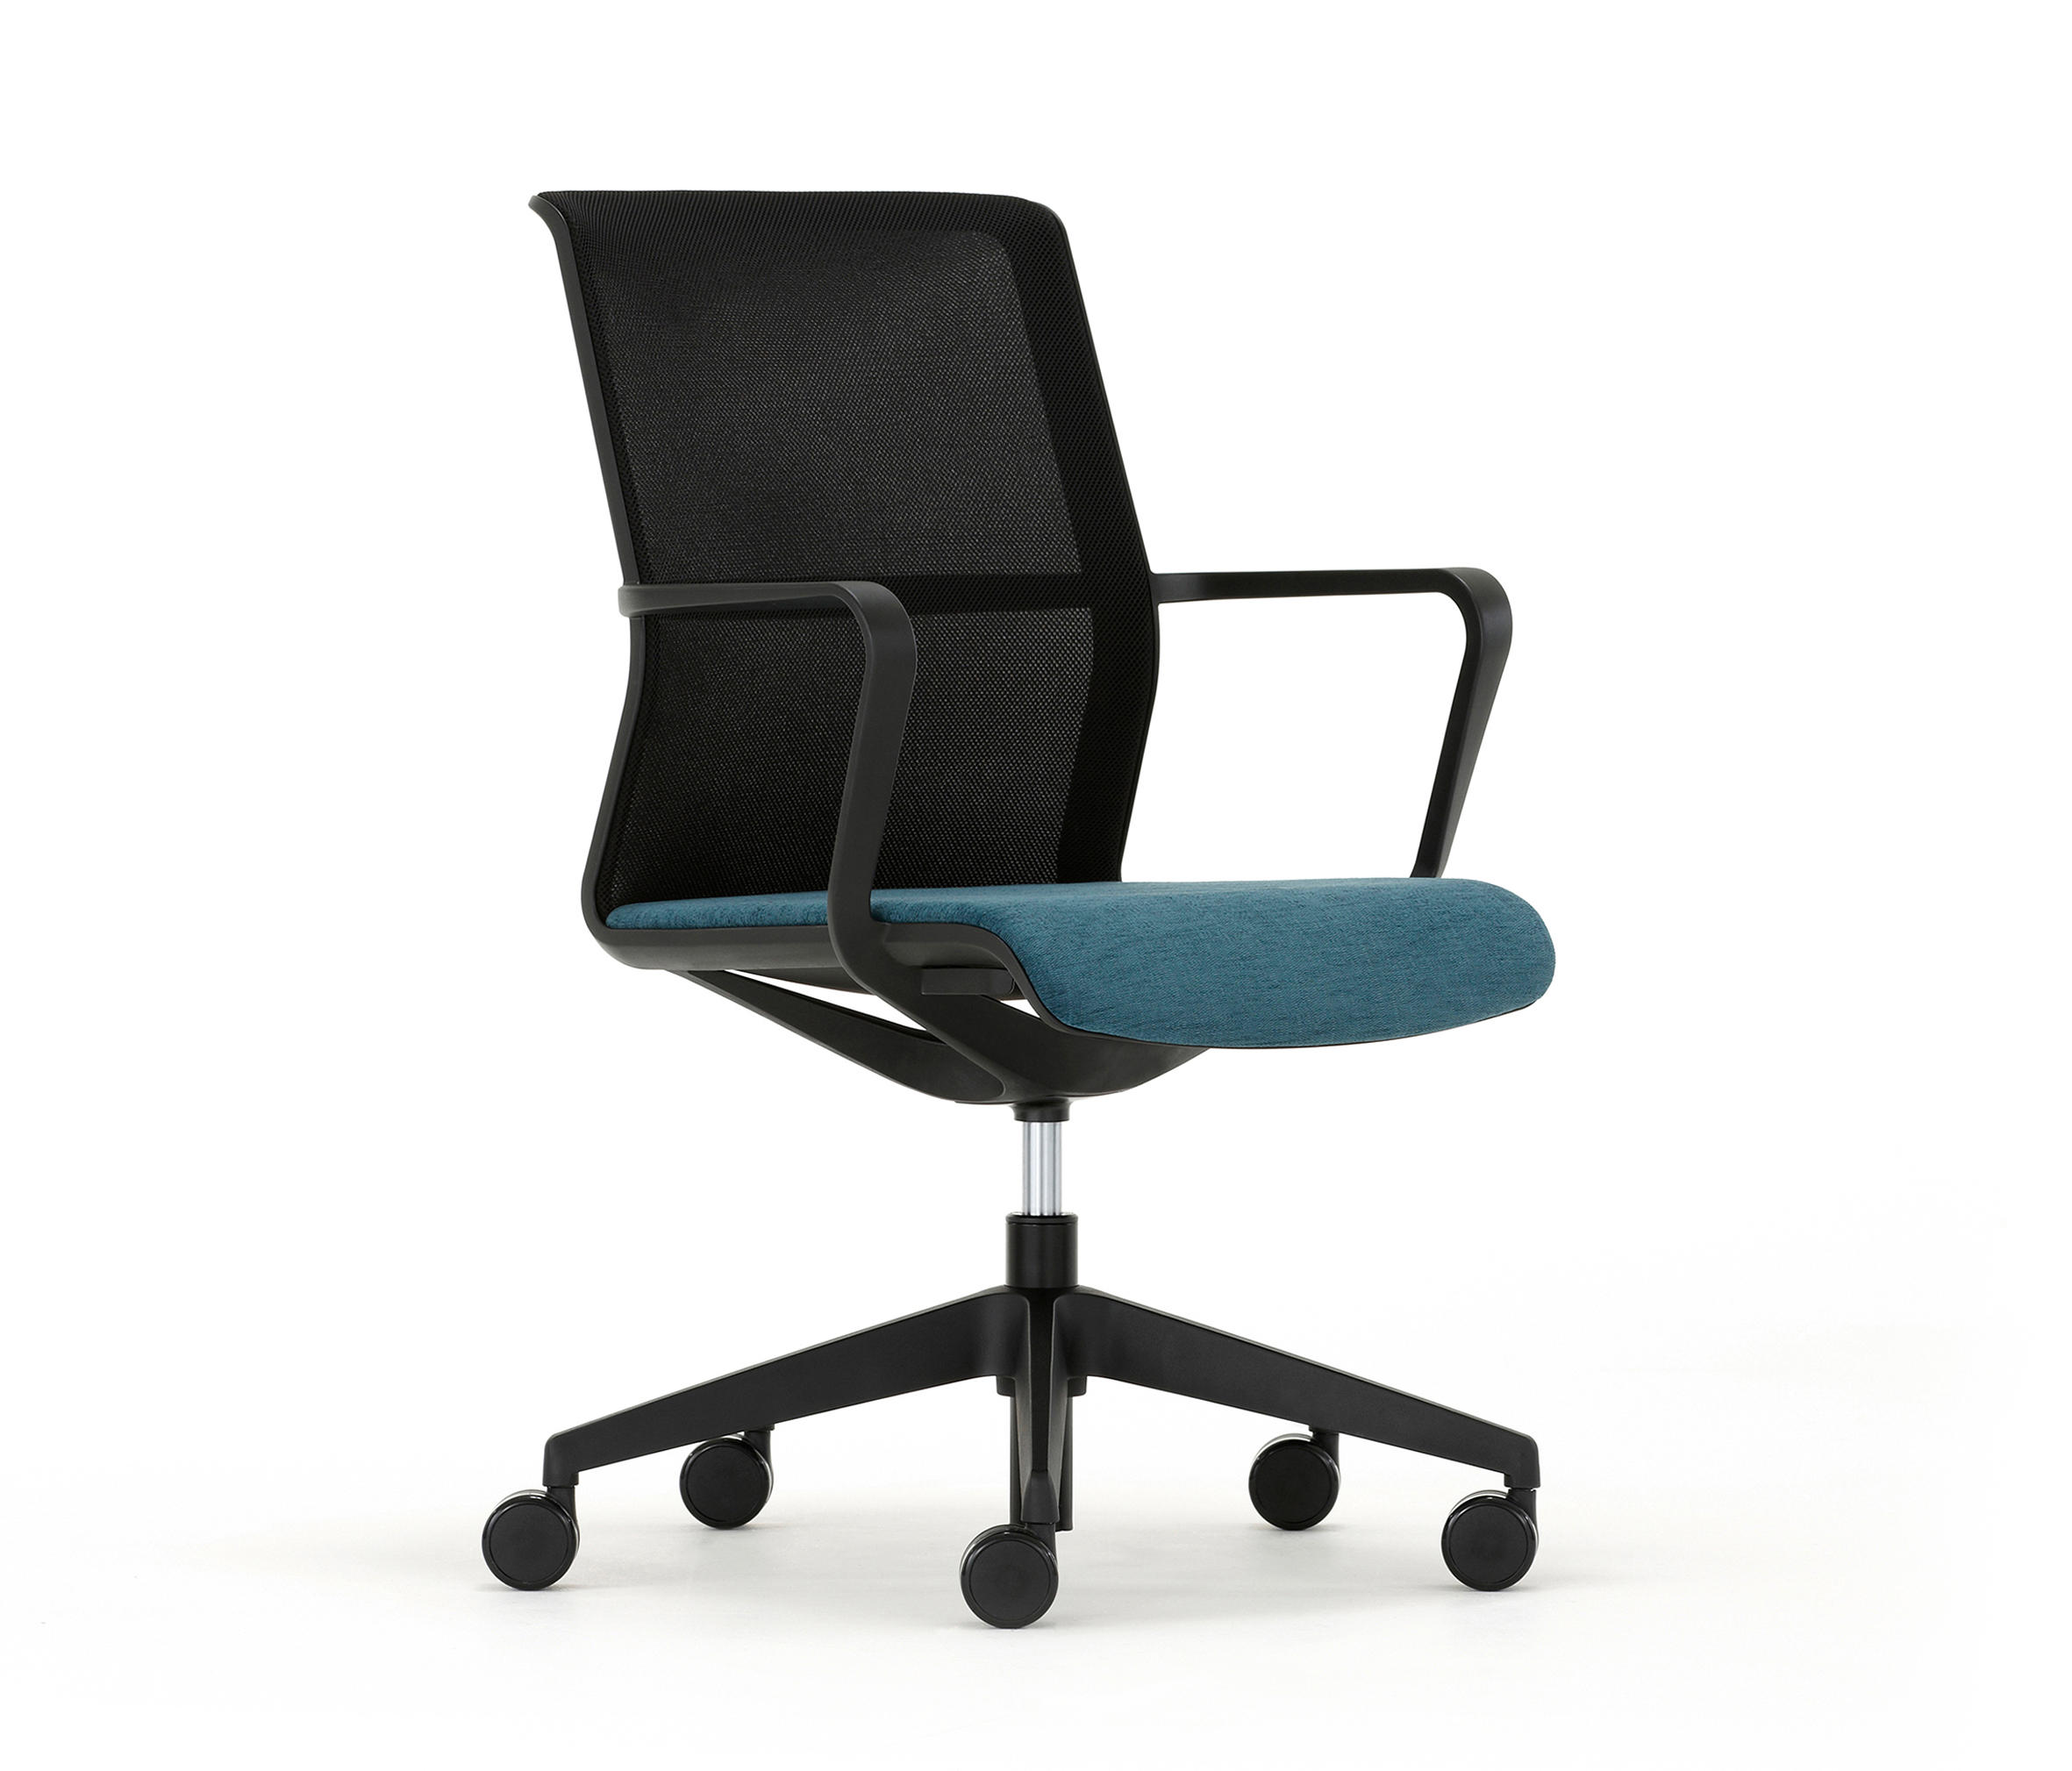 Circo Cr2 Task Chairs From Senator Architonic